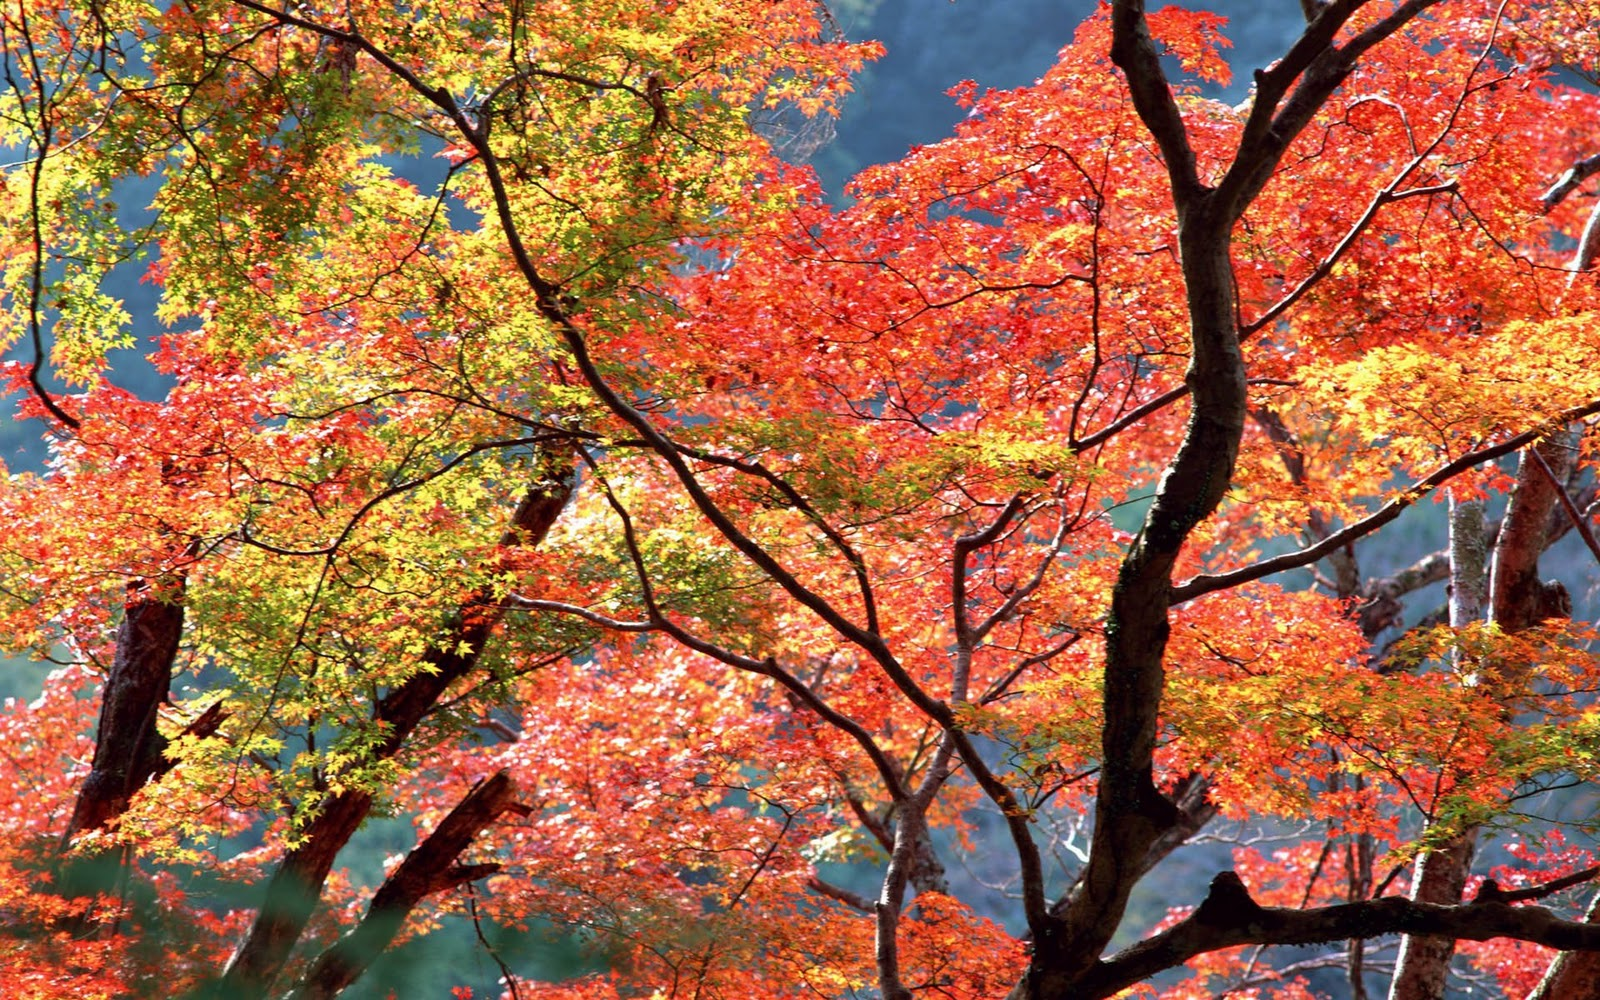 http://2.bp.blogspot.com/-yaA4bONuOmw/TwH27H_pWQI/AAAAAAAAbT4/H2nynRIdUo4/s1600/Autumn+Trees+HD+Wallpapers.jpg